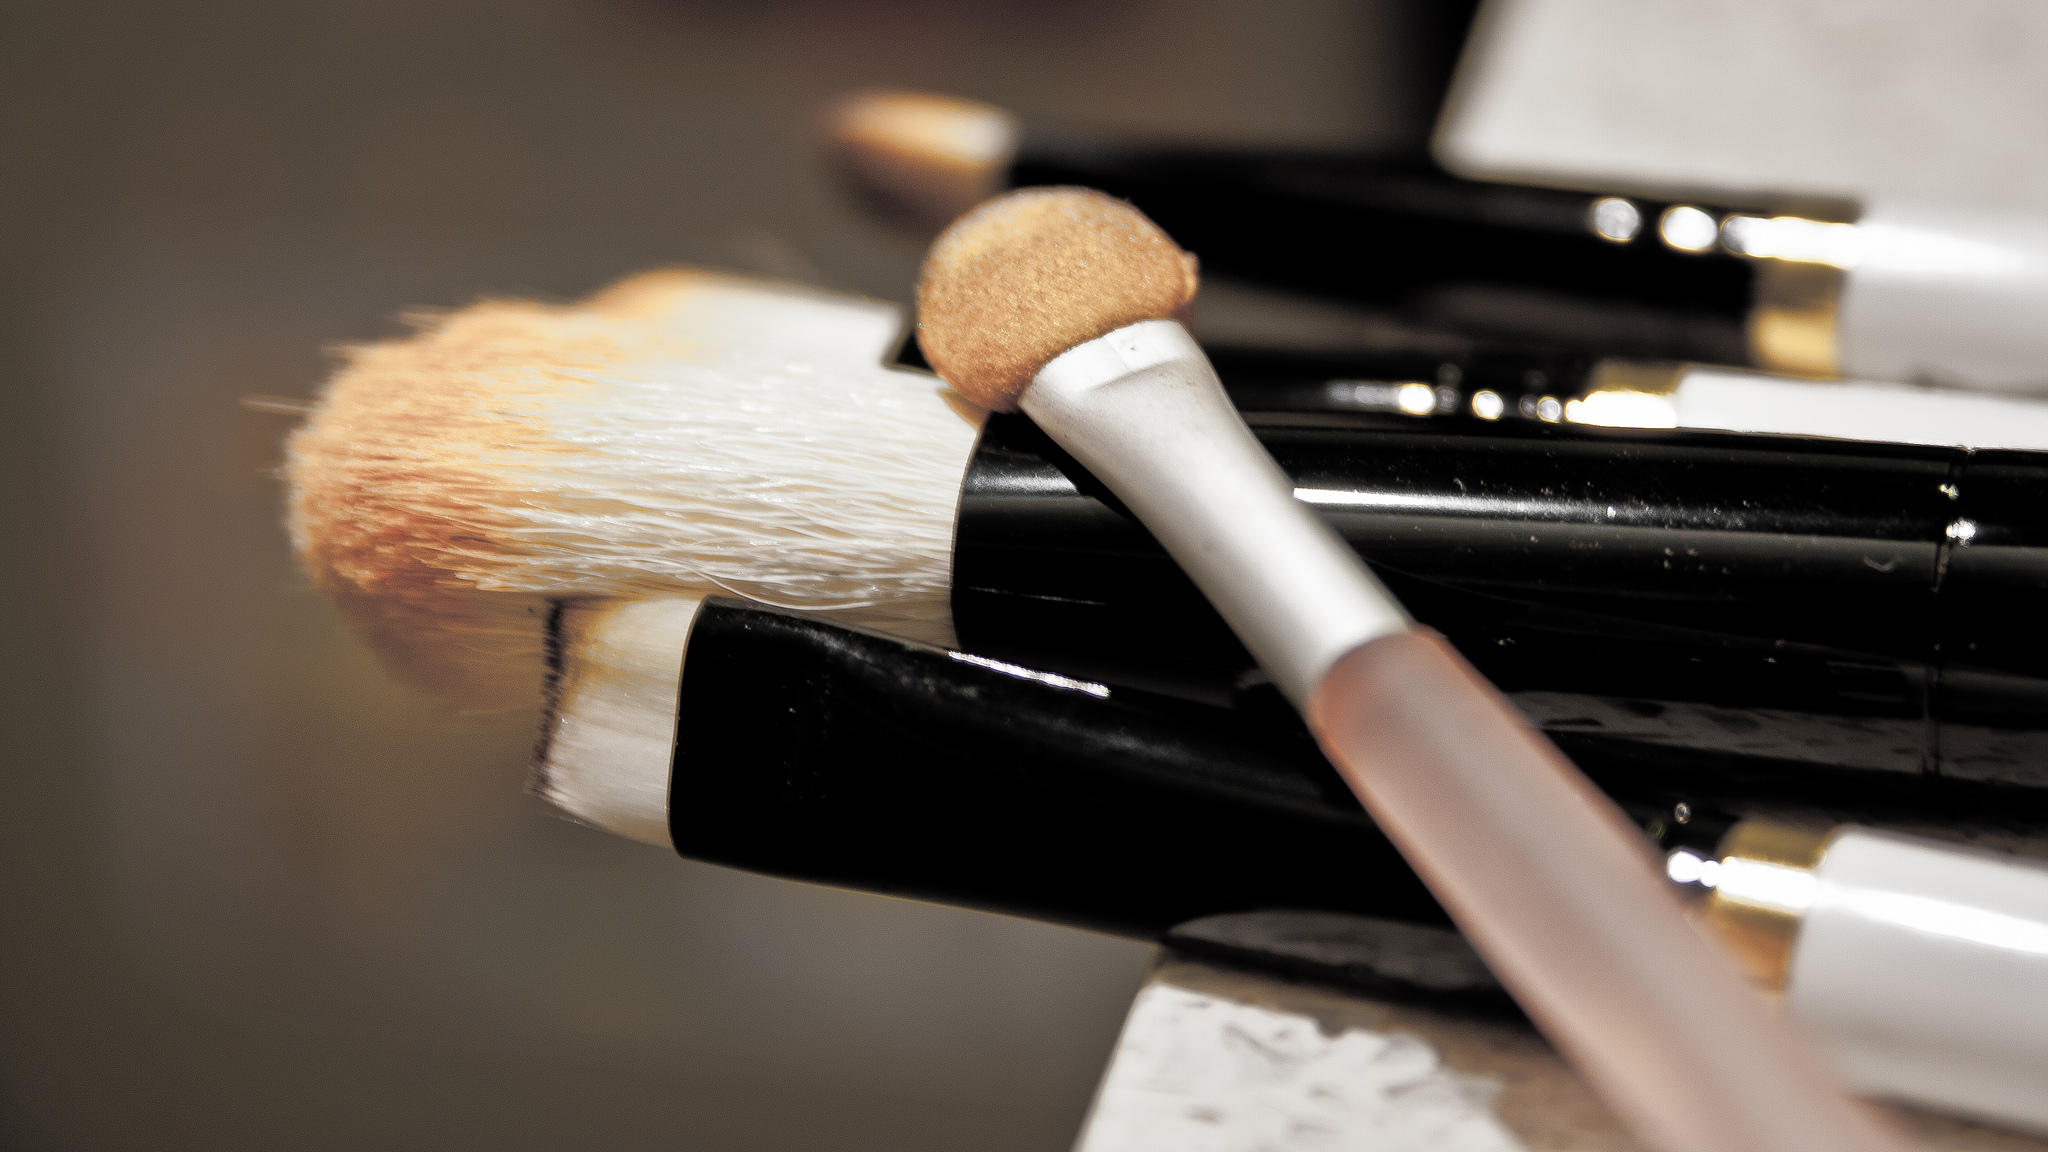 Makeup brushes by Natasia Causse